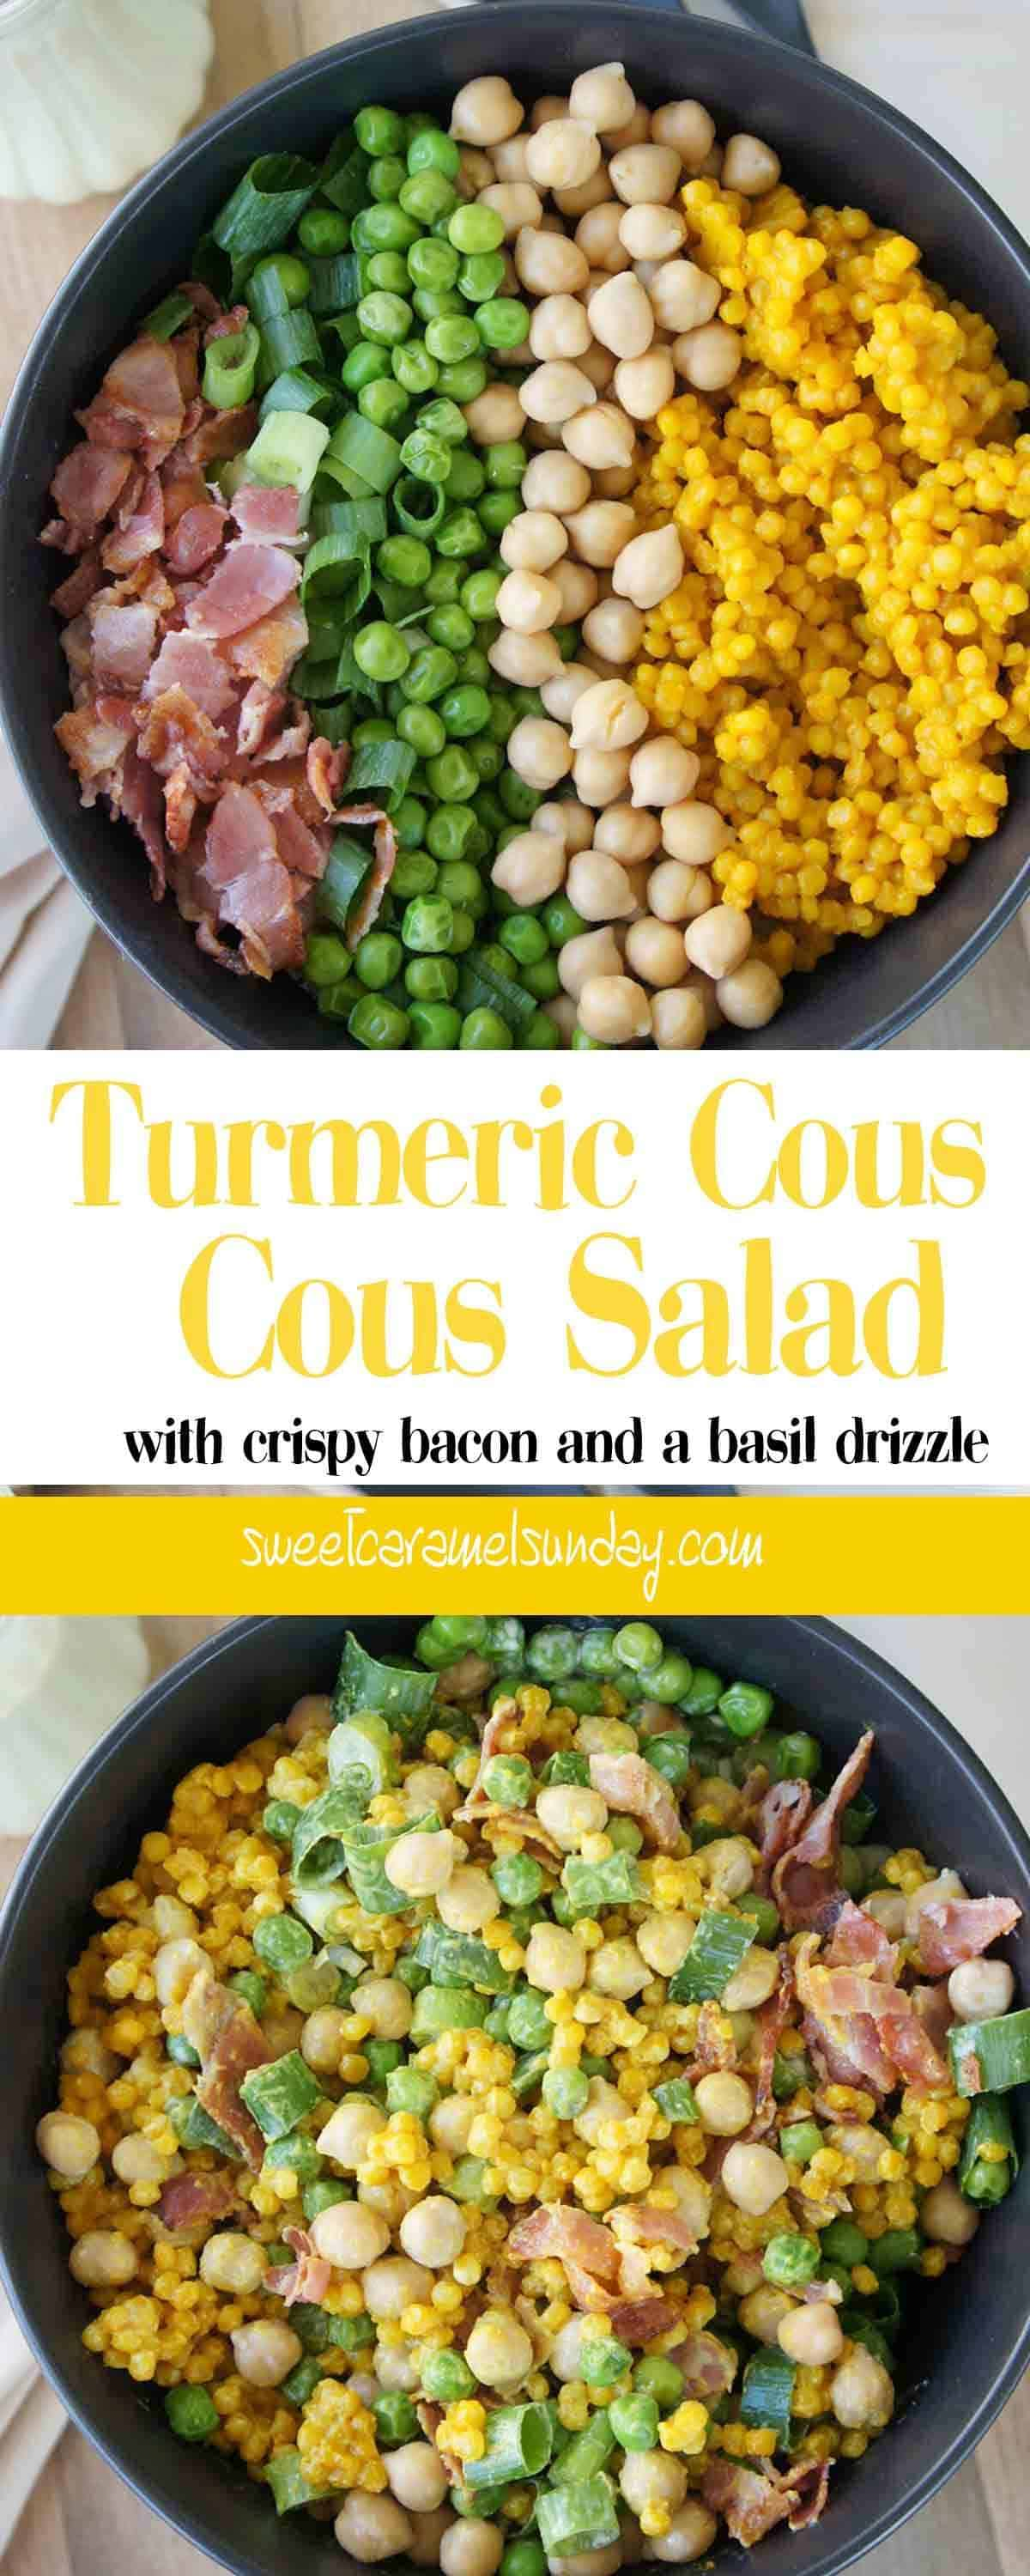 Turmeric Cous Cous Salad in a black bowl